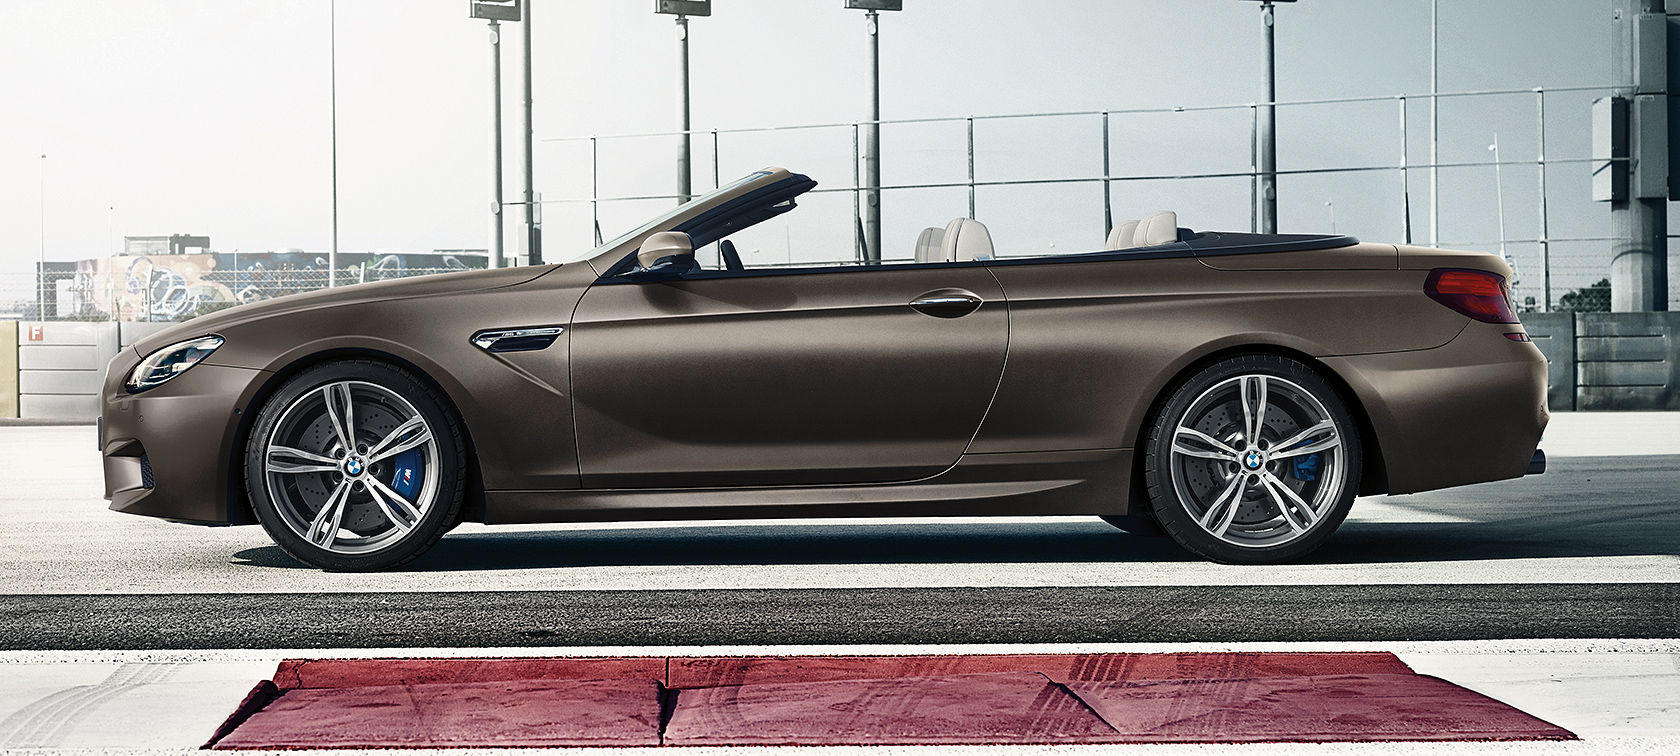 BMW M Series M6 Convertible: brown metallic color in side view.